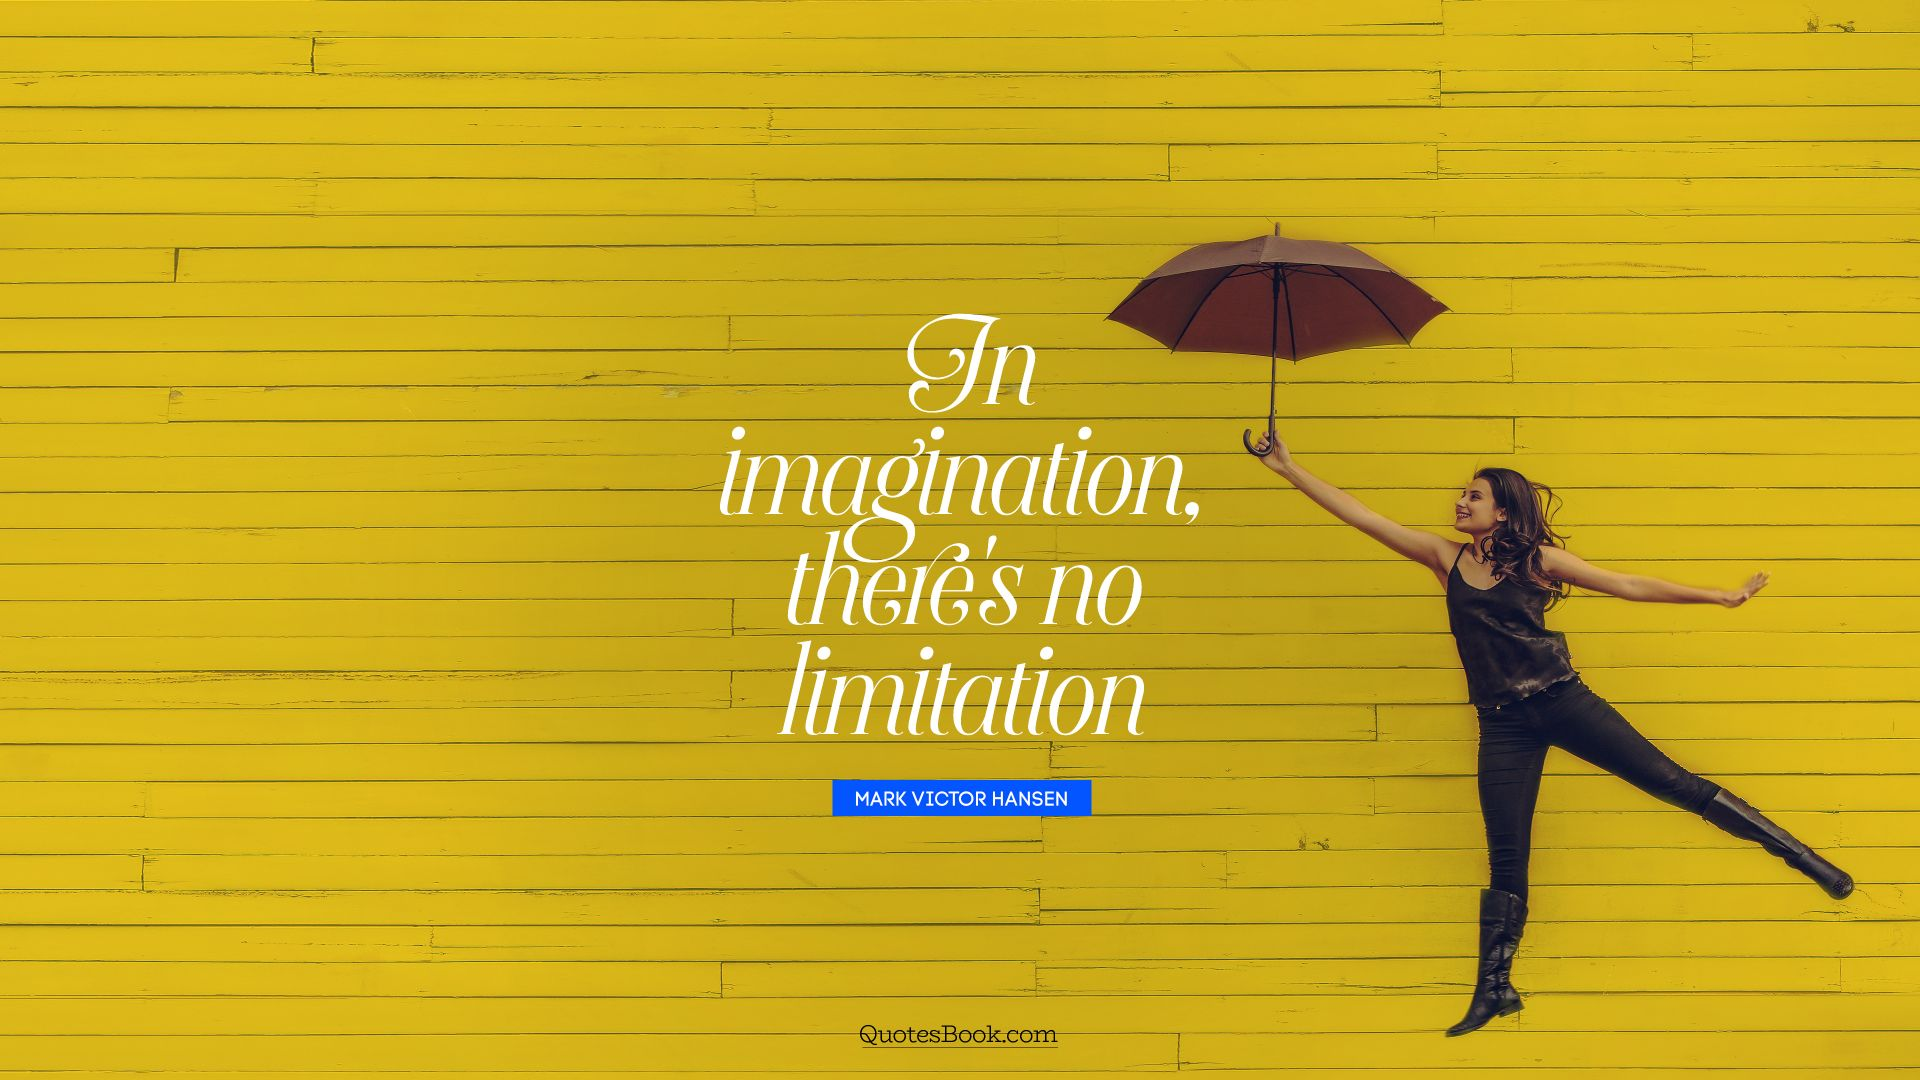 In imagination, there's no limitation. - Quote by Mark Victor Hansen